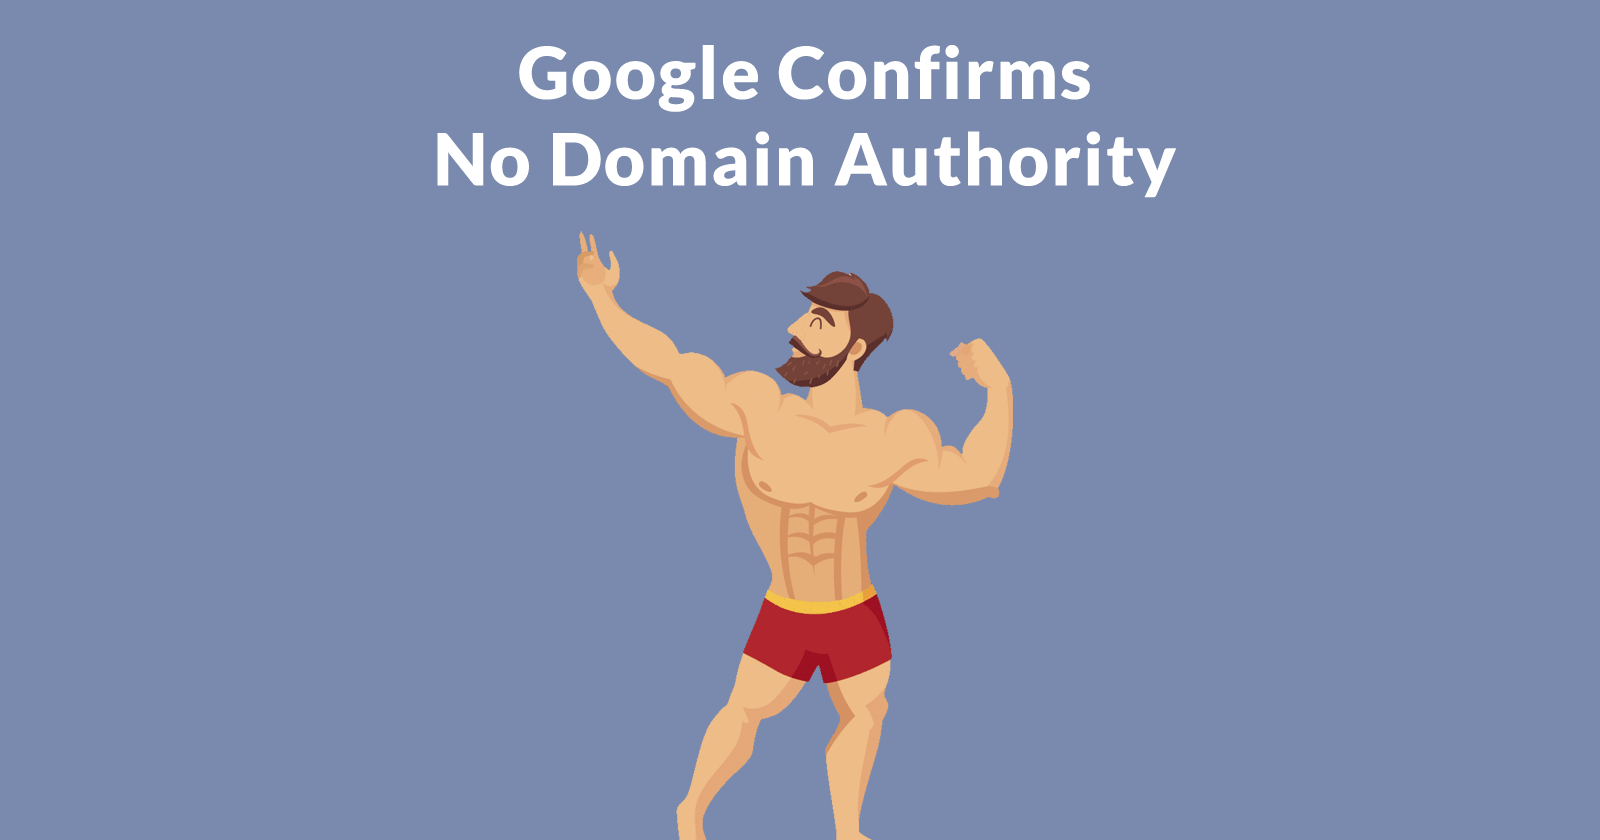 John Mueller Rebuts Idea that Google Uses Domain Authority Signal by @martinibuster